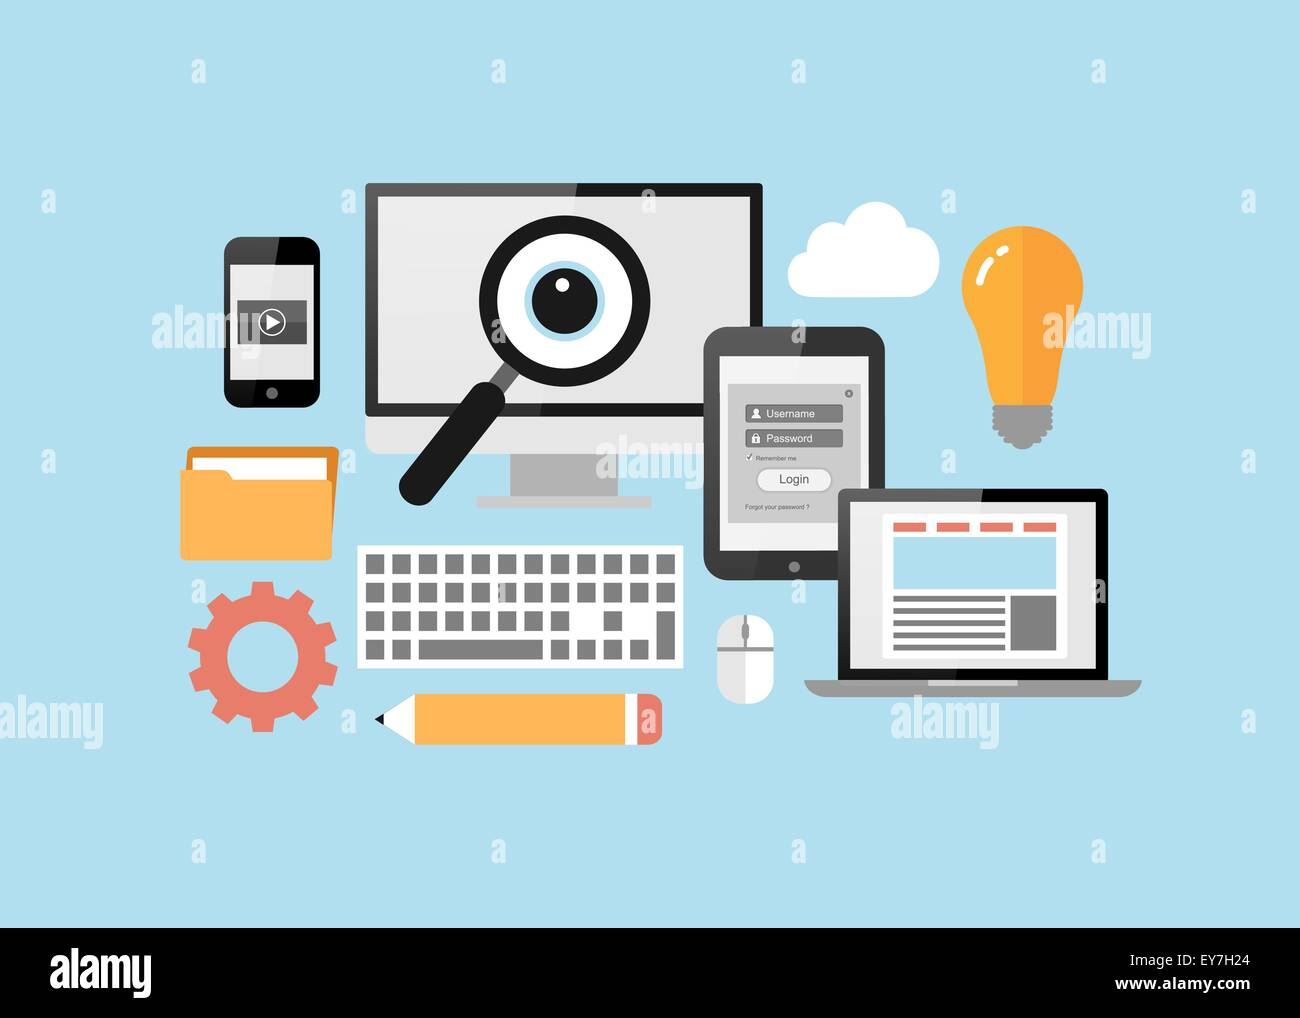 Computer, tablet PC, smart phone, notebook with flat ui design elements on blue background - Stock Image